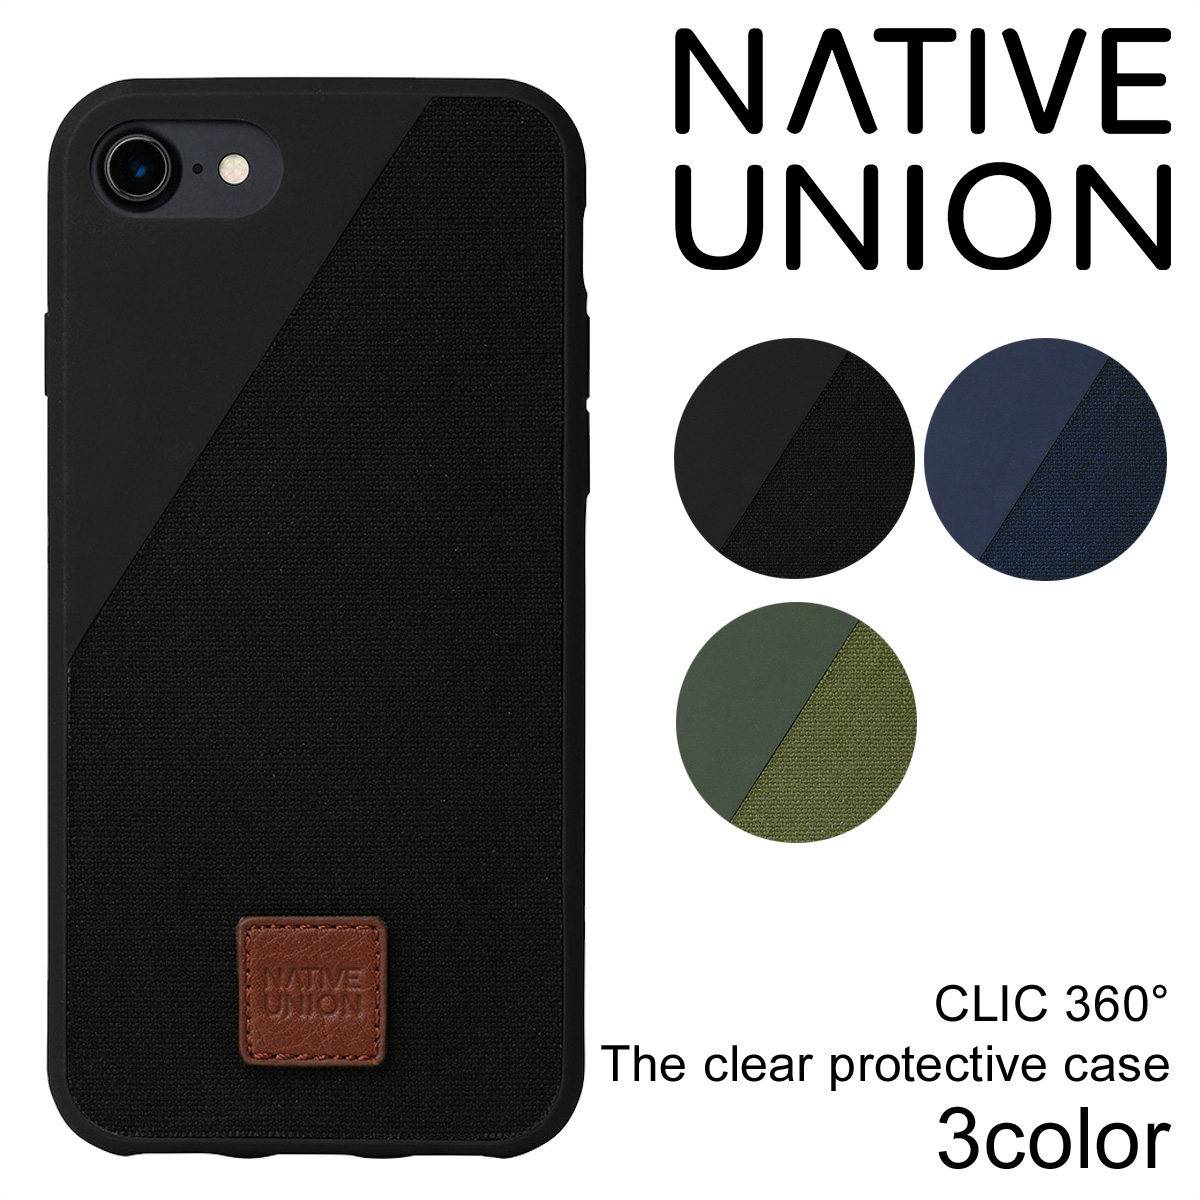 native union iphone 7 case